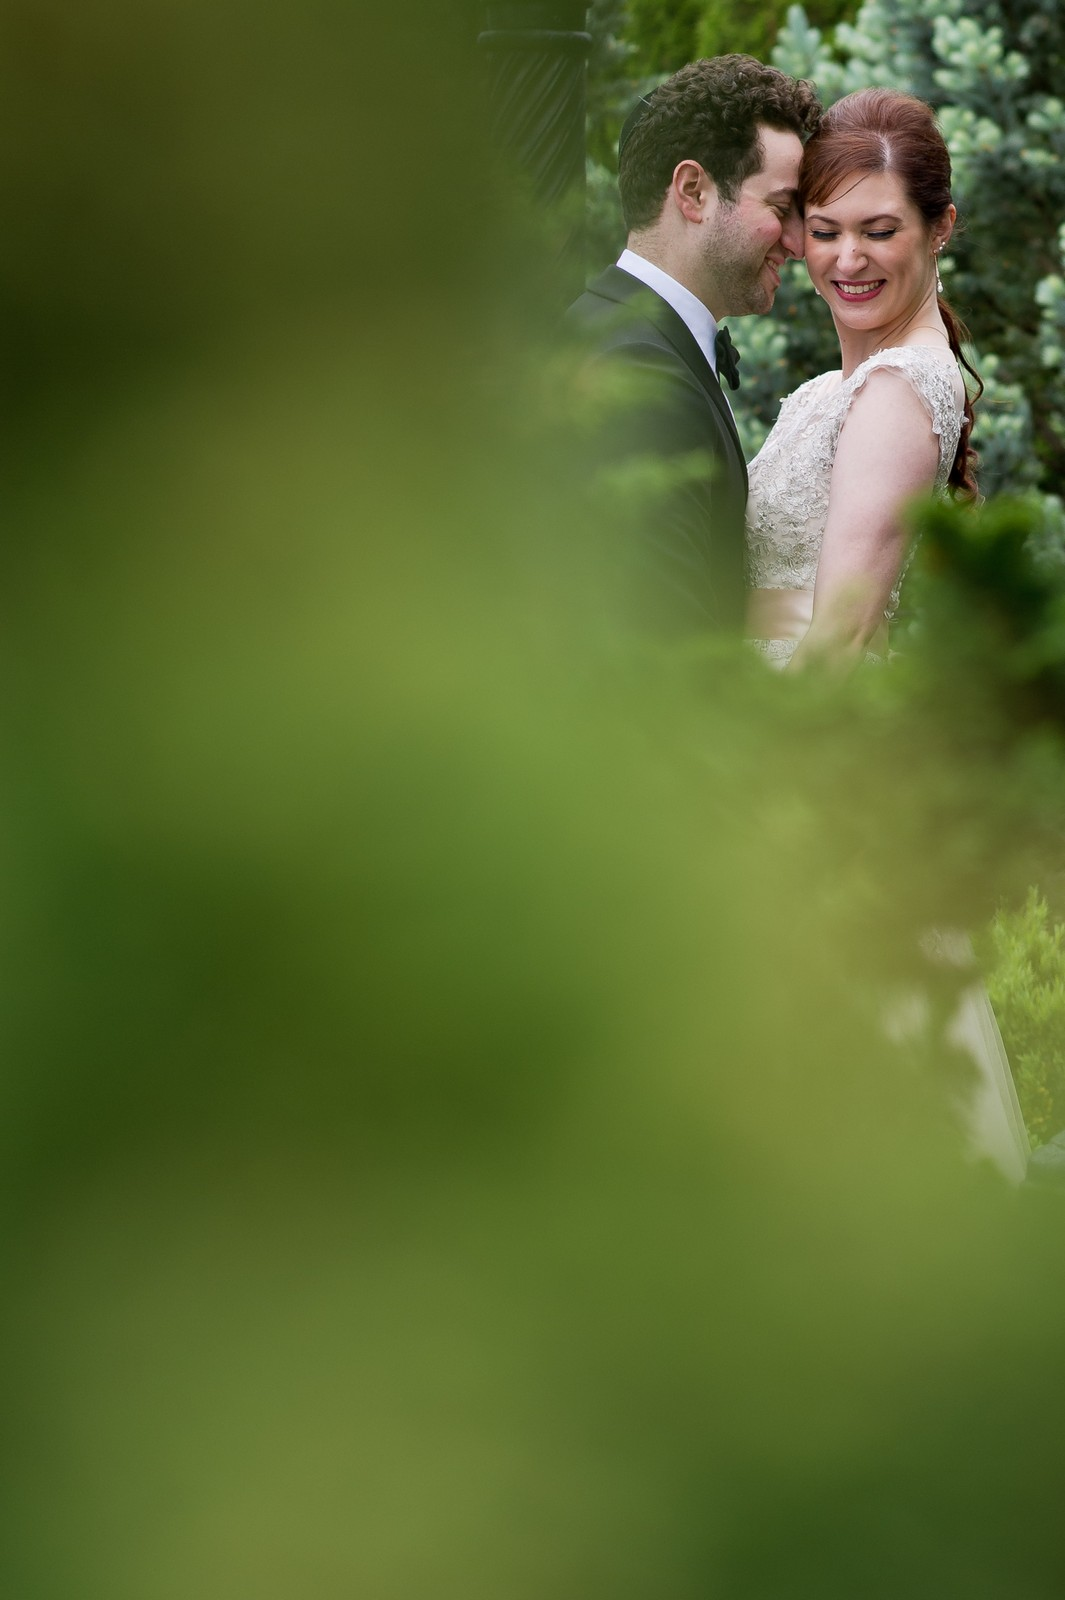 Yoey and Aaron's Memorial Day Modern Jewish Wedding at Anthony's Pier 9, New Windsor, NY Photos by Chaim Schvarcz couple bride groom portraits